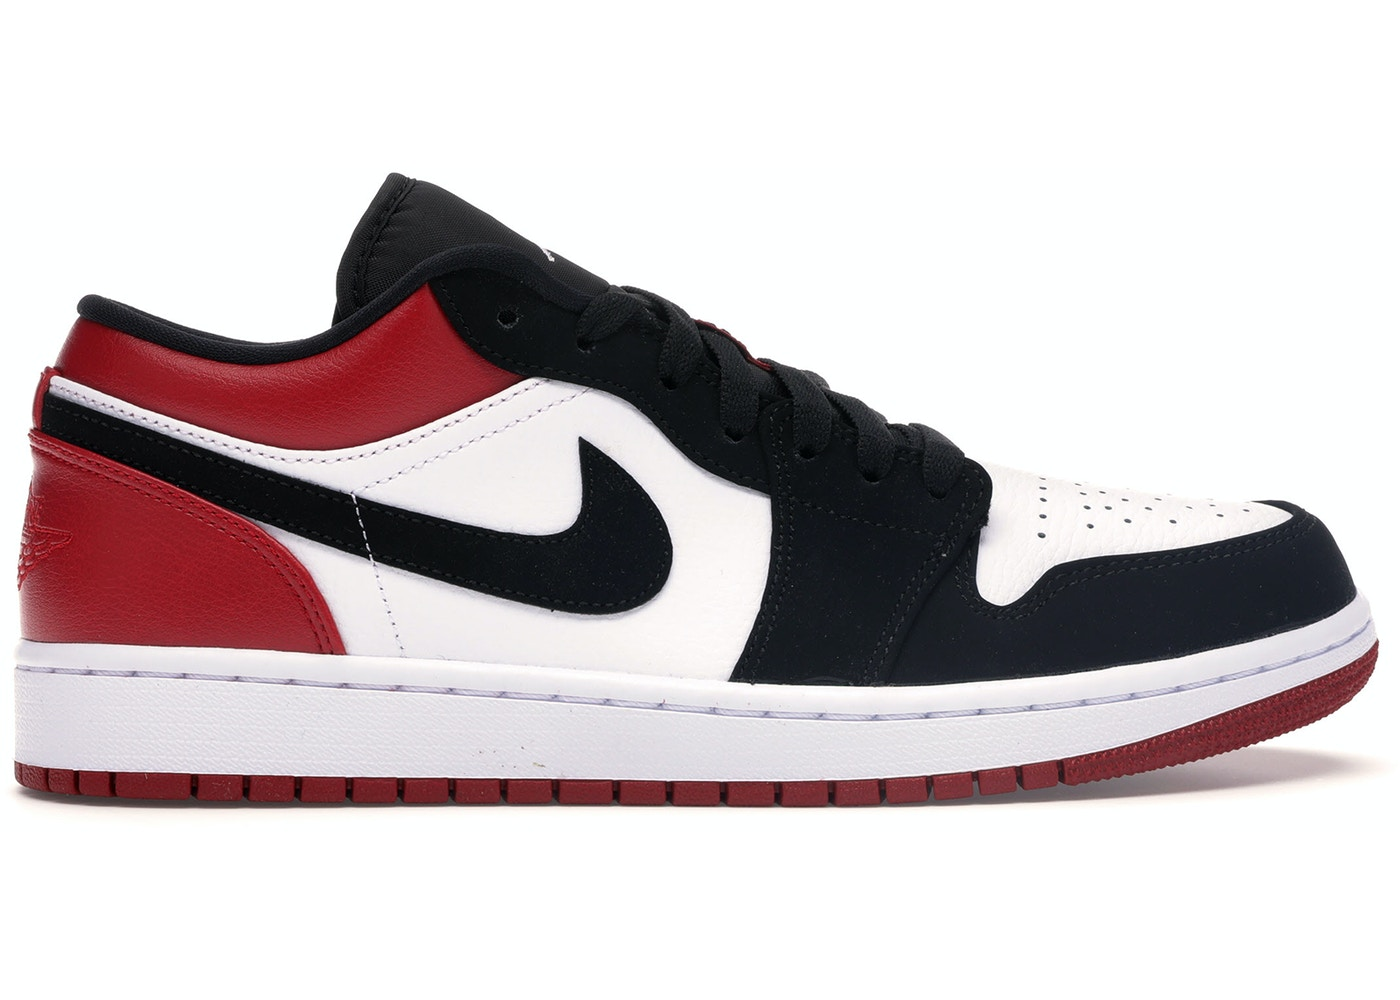 a88a2dd6 Jordan 1 Low Black Toe - 553558-116